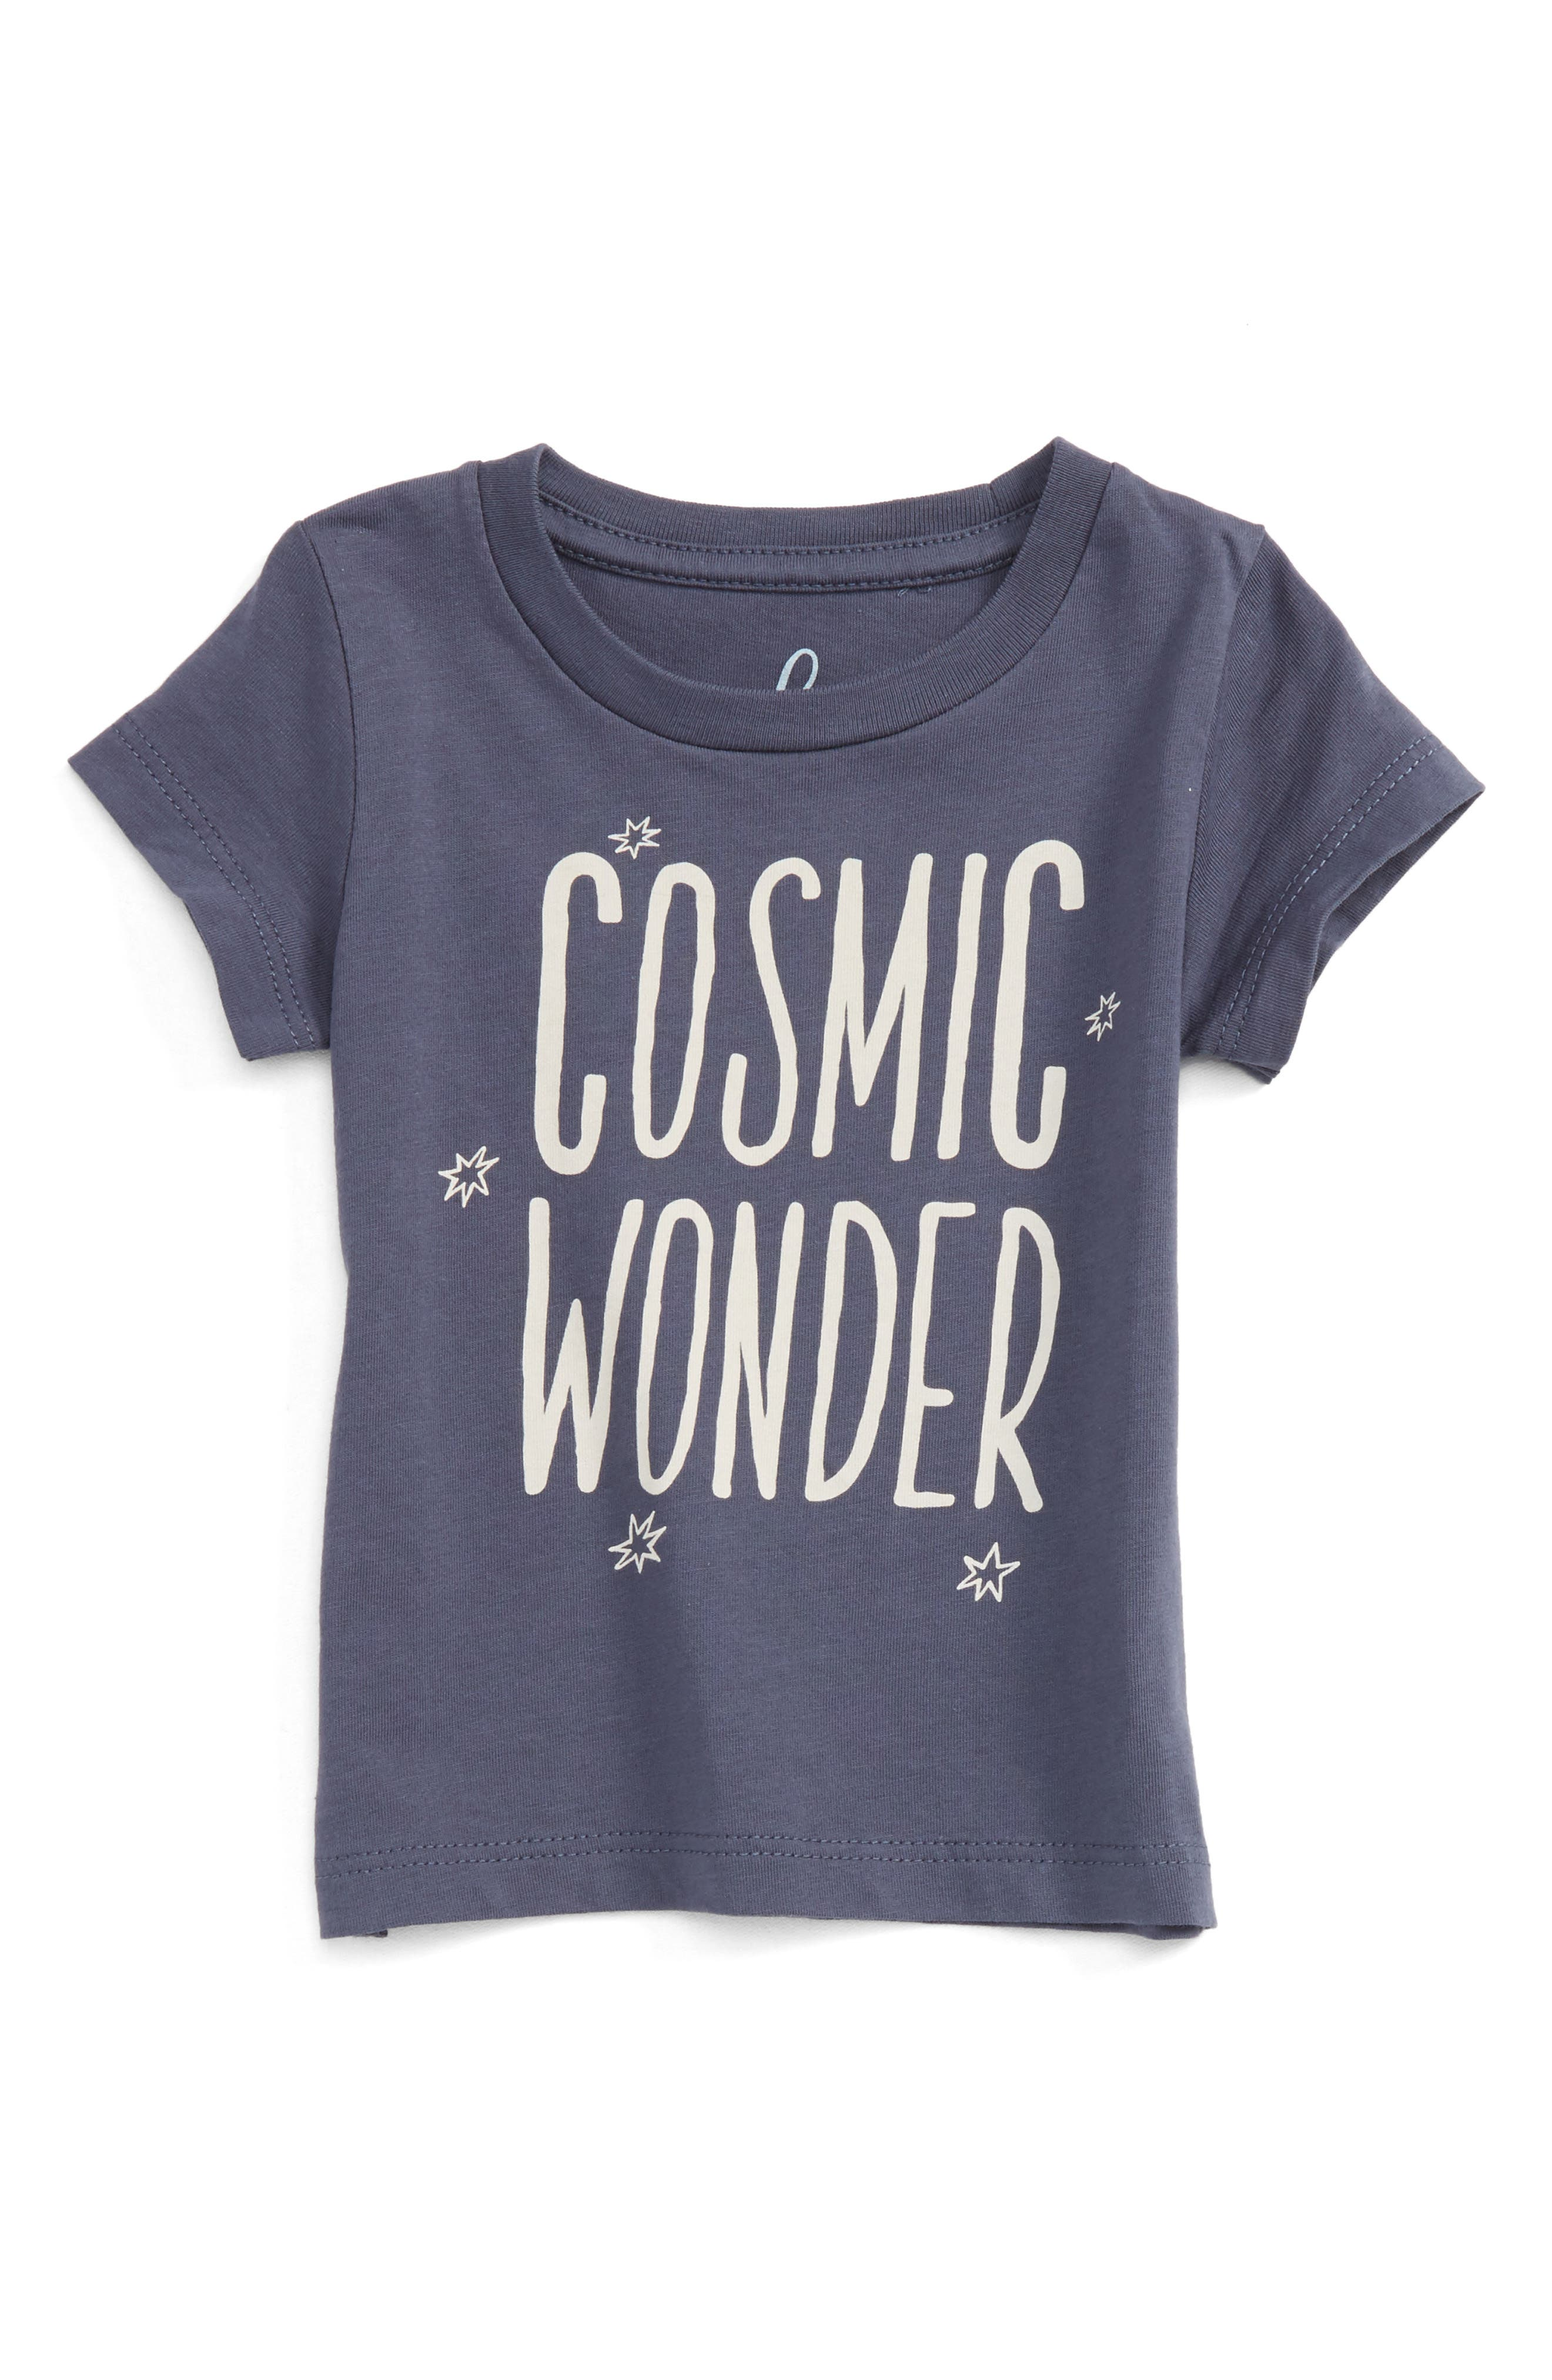 Alternate Image 1 Selected - Peek Cosmic Wonder Graphic T-Shirt (Baby Boys)